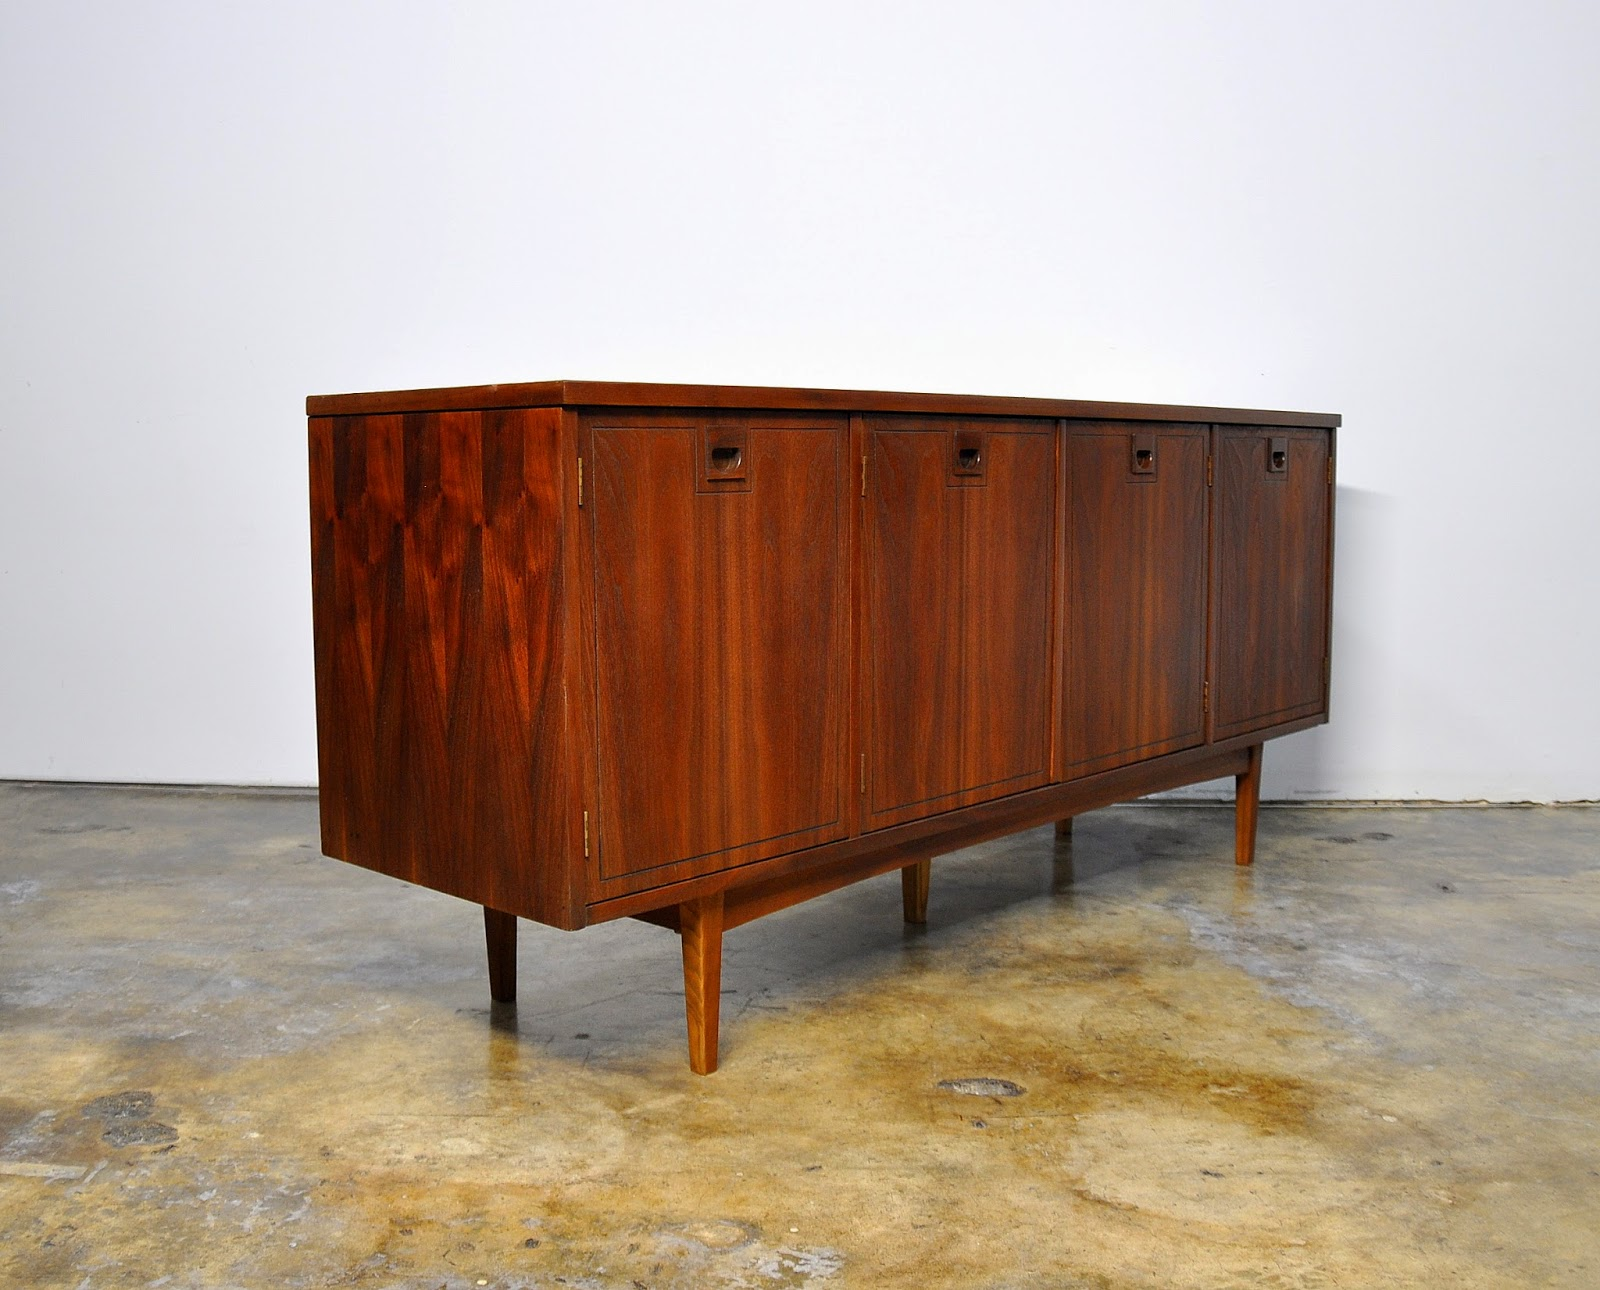 stanley furniture credenza bar room divider media console buffet or sideboard with hutch